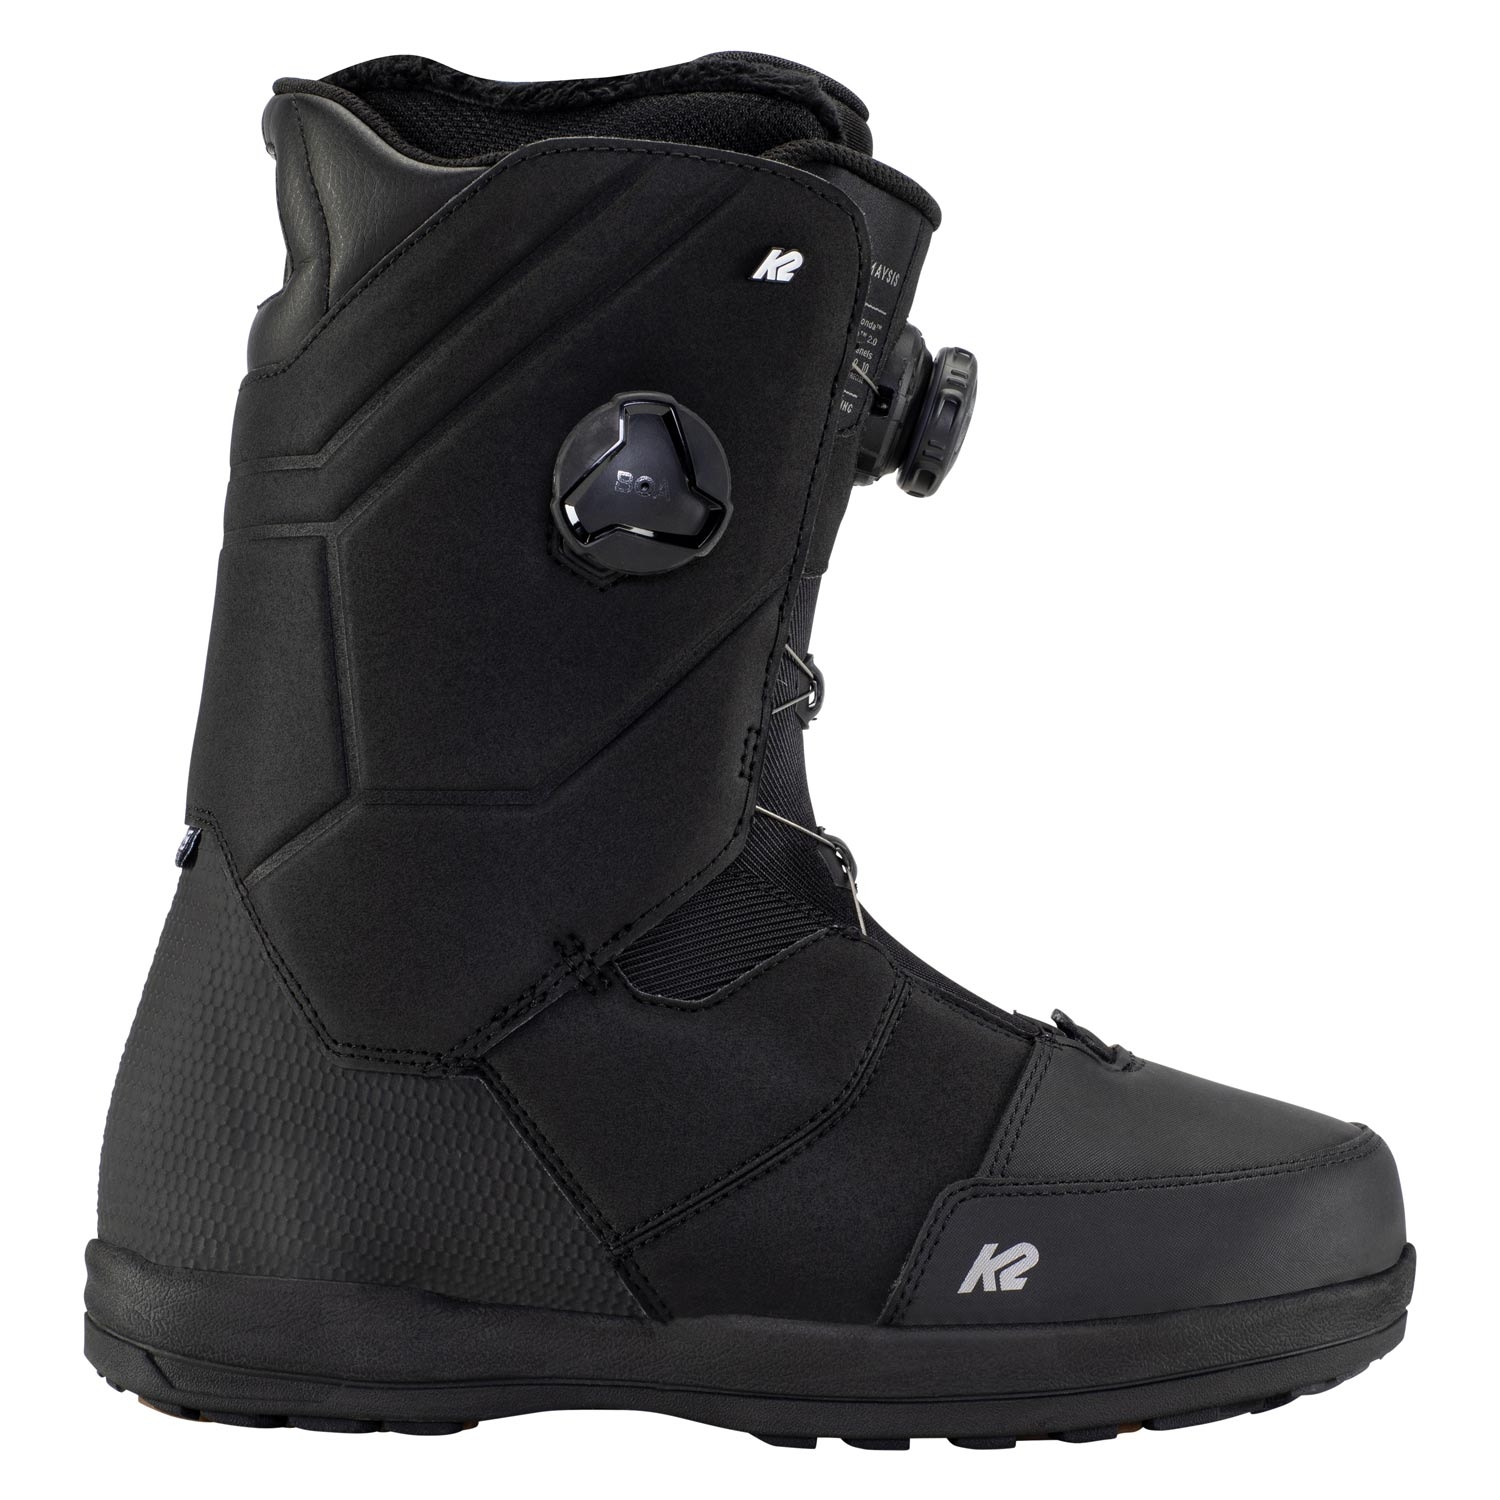 K2 Maysis Wide Snowboard Boots Black 2021